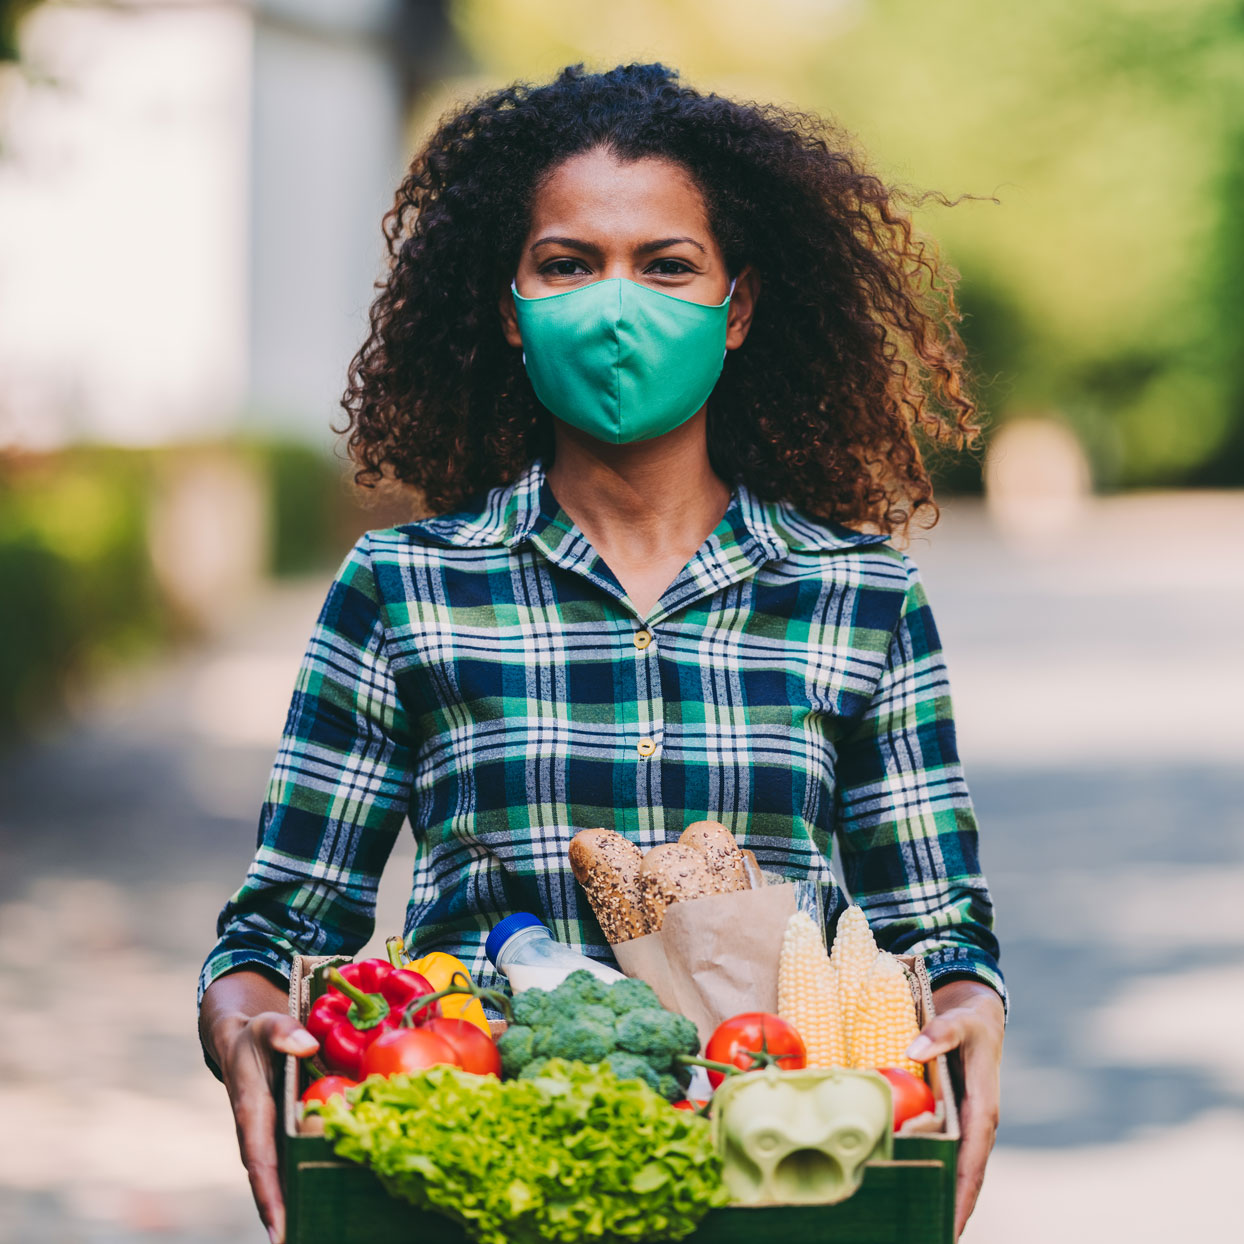 woman with mask on delivering food